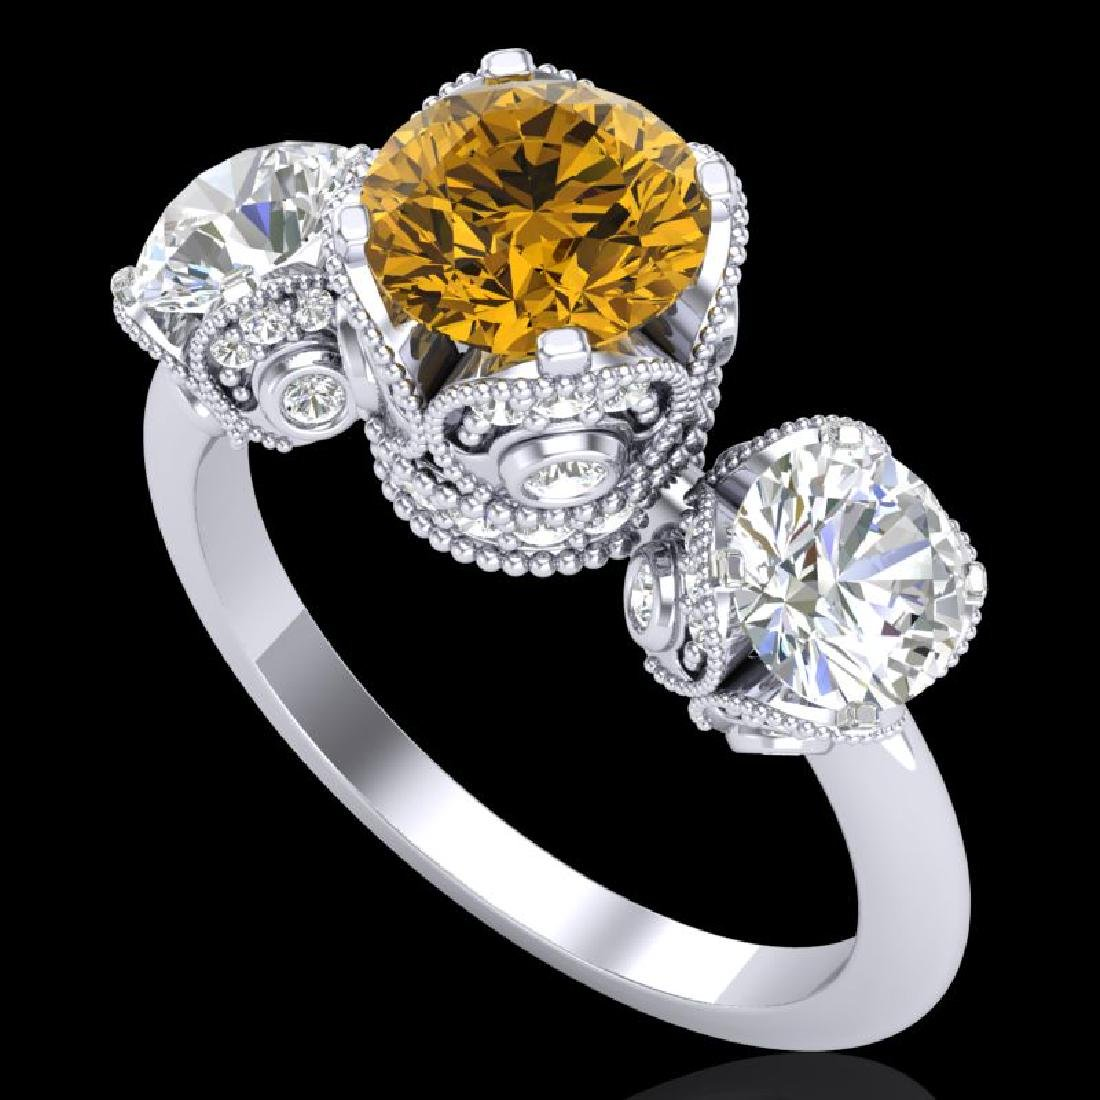 3 CTW Intense Yellow Diamond Solitaire Art Deco 3 Stone